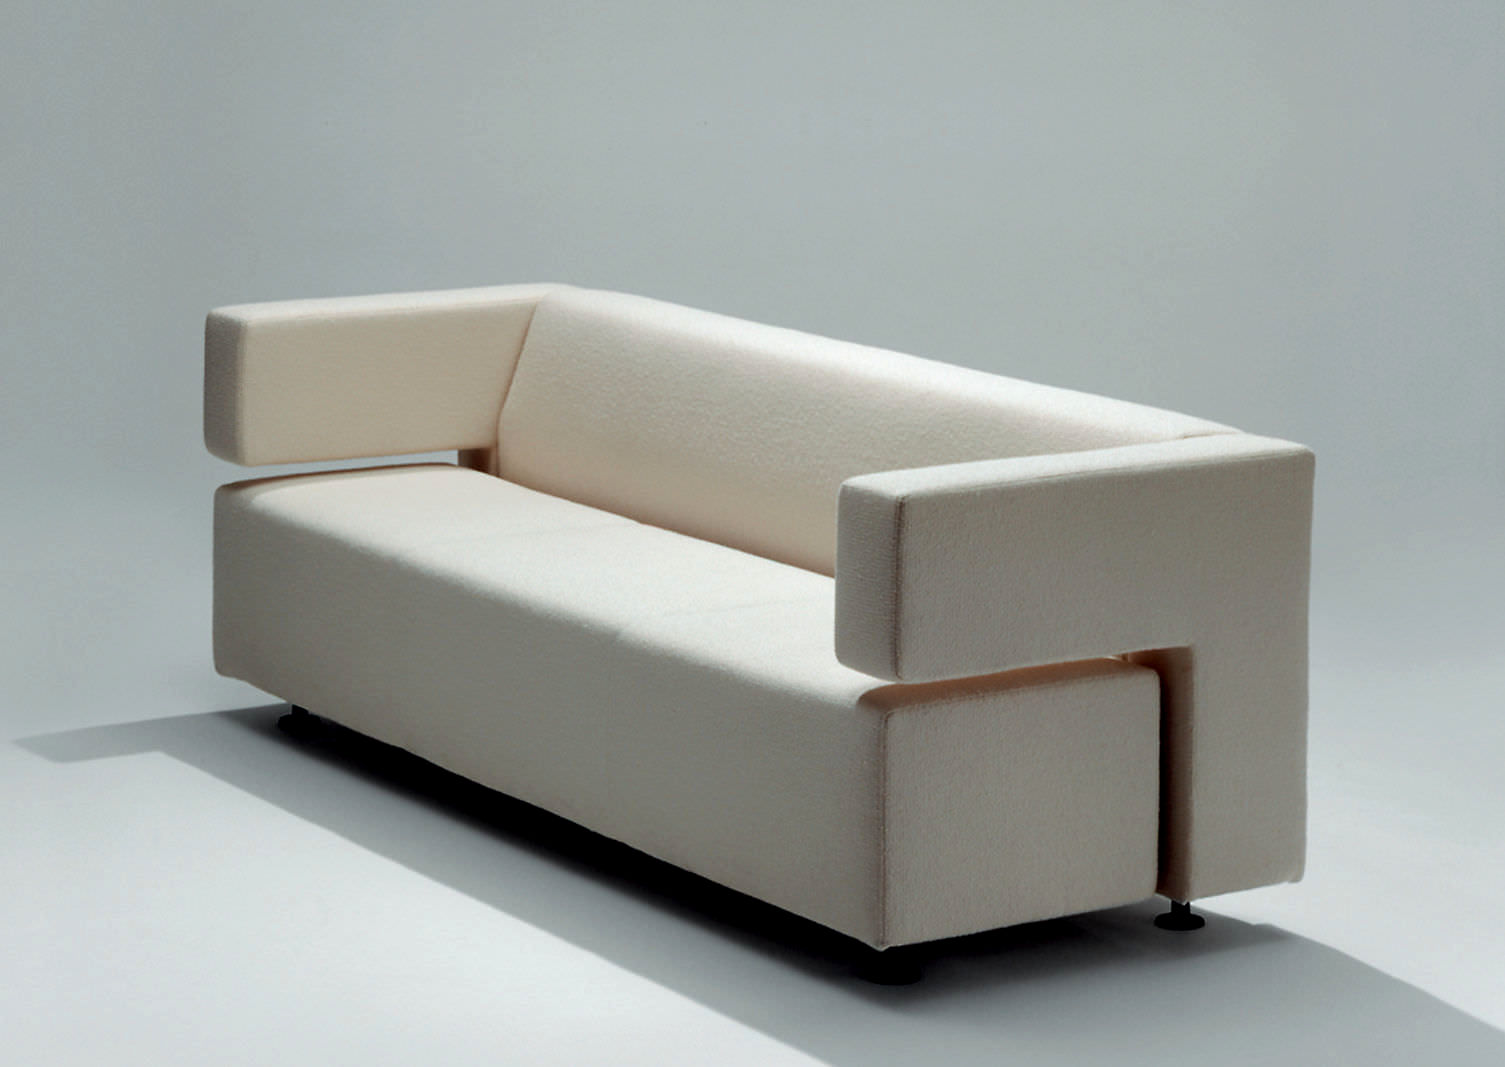 contemporary leather sectional sleeper sofa collection-Elegant Leather Sectional Sleeper sofa Wallpaper